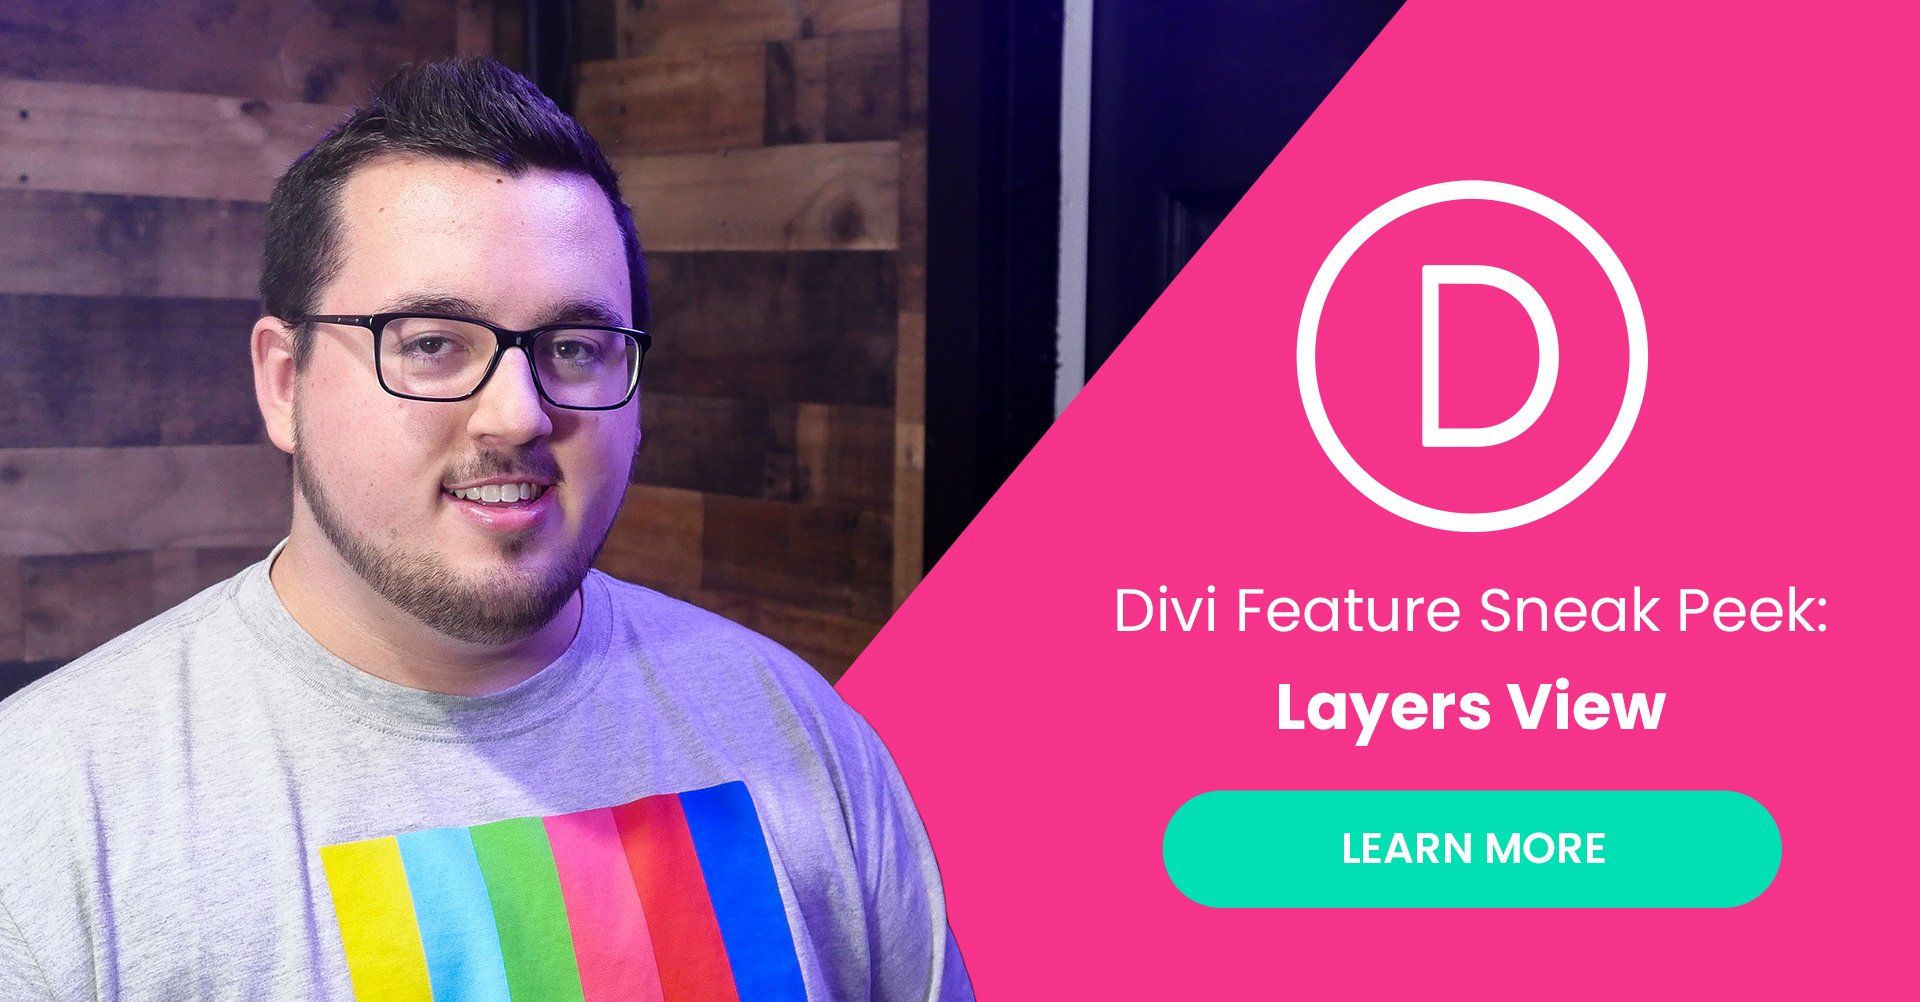 Divi Sneak Peek: Layers View